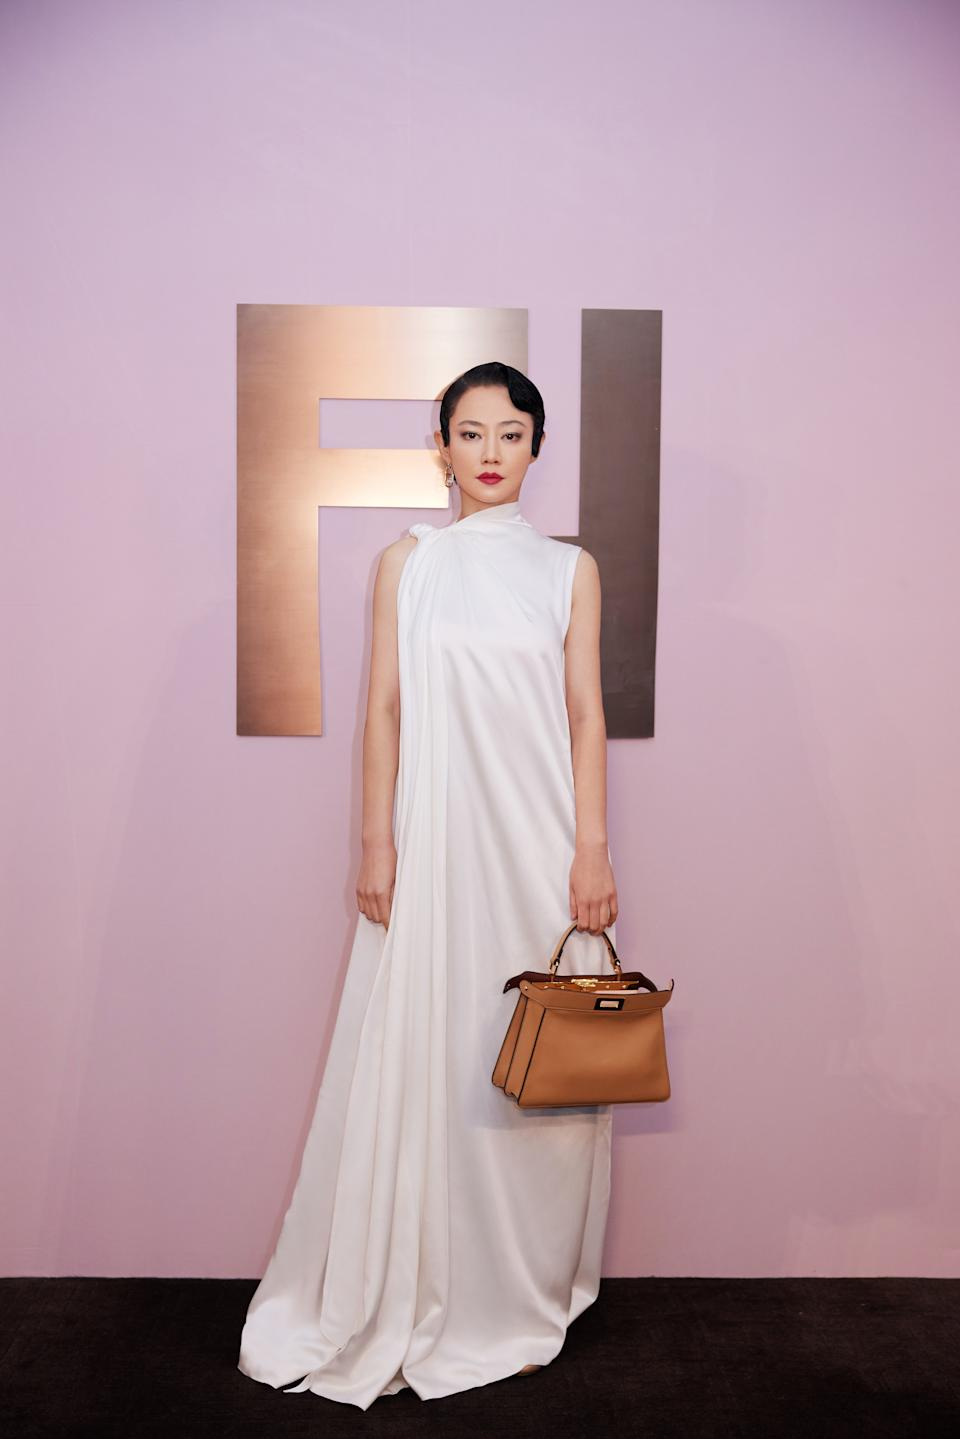 Actress Tan Zhuo at Fendi Shanghai show. (PHOTO: Fendi)